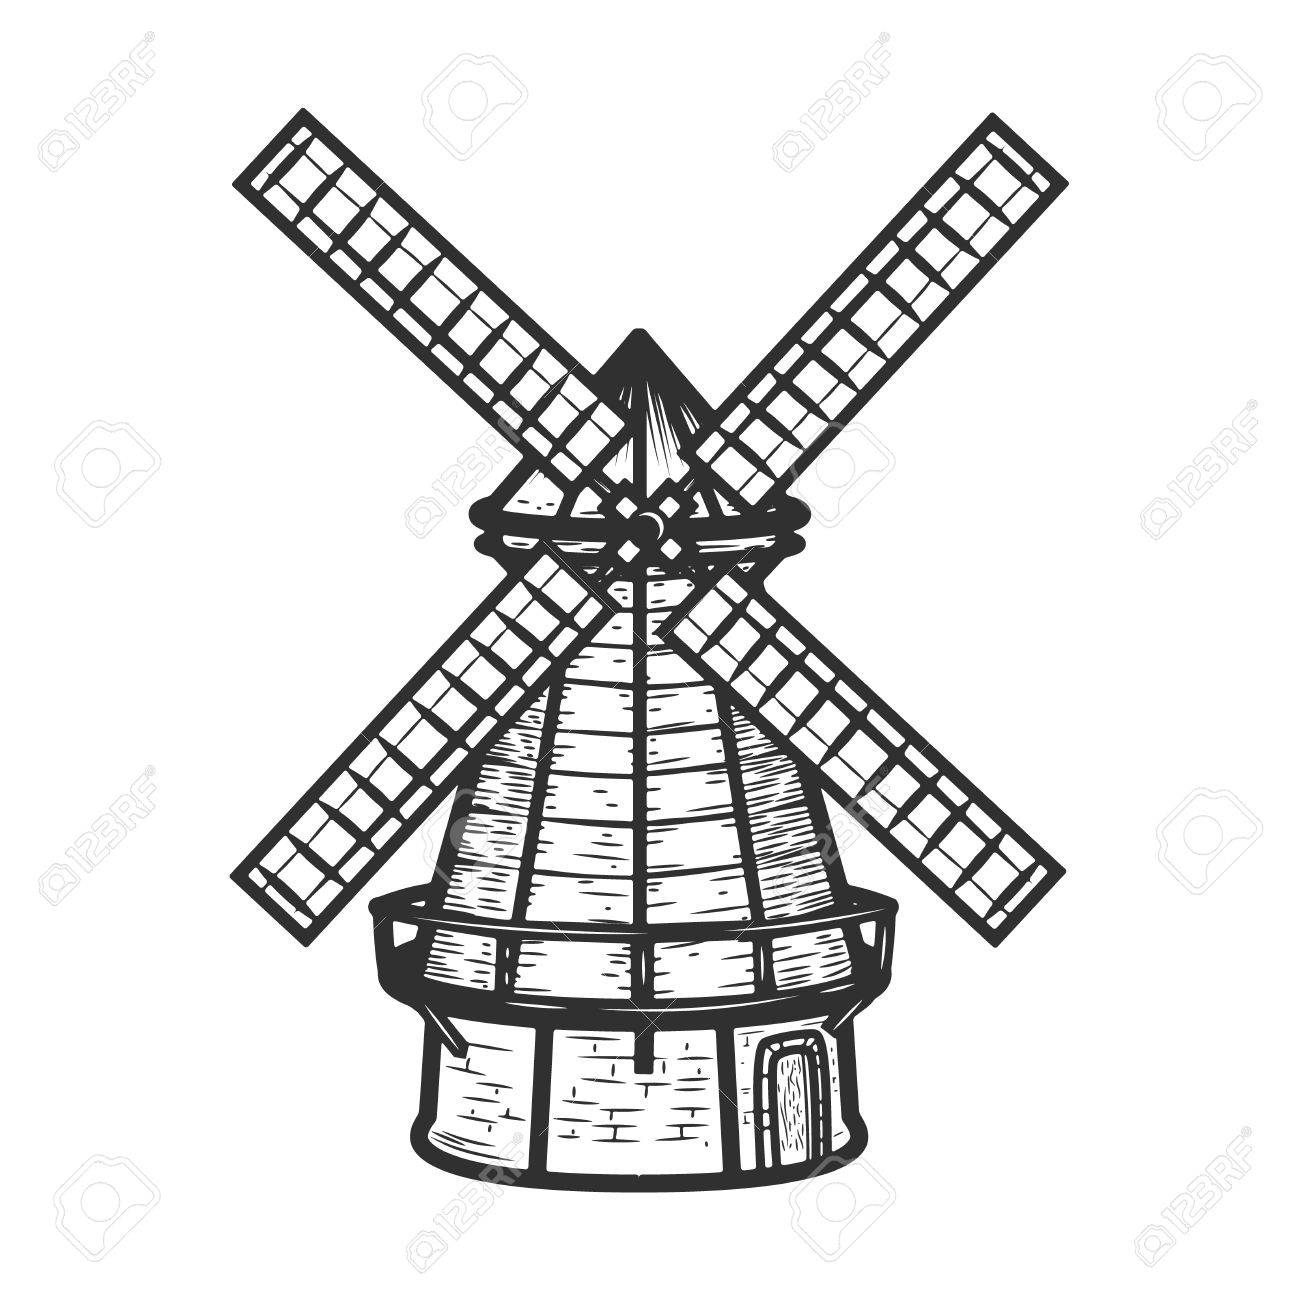 1299x1300 Windmill Illustration Isolated On White Background Background